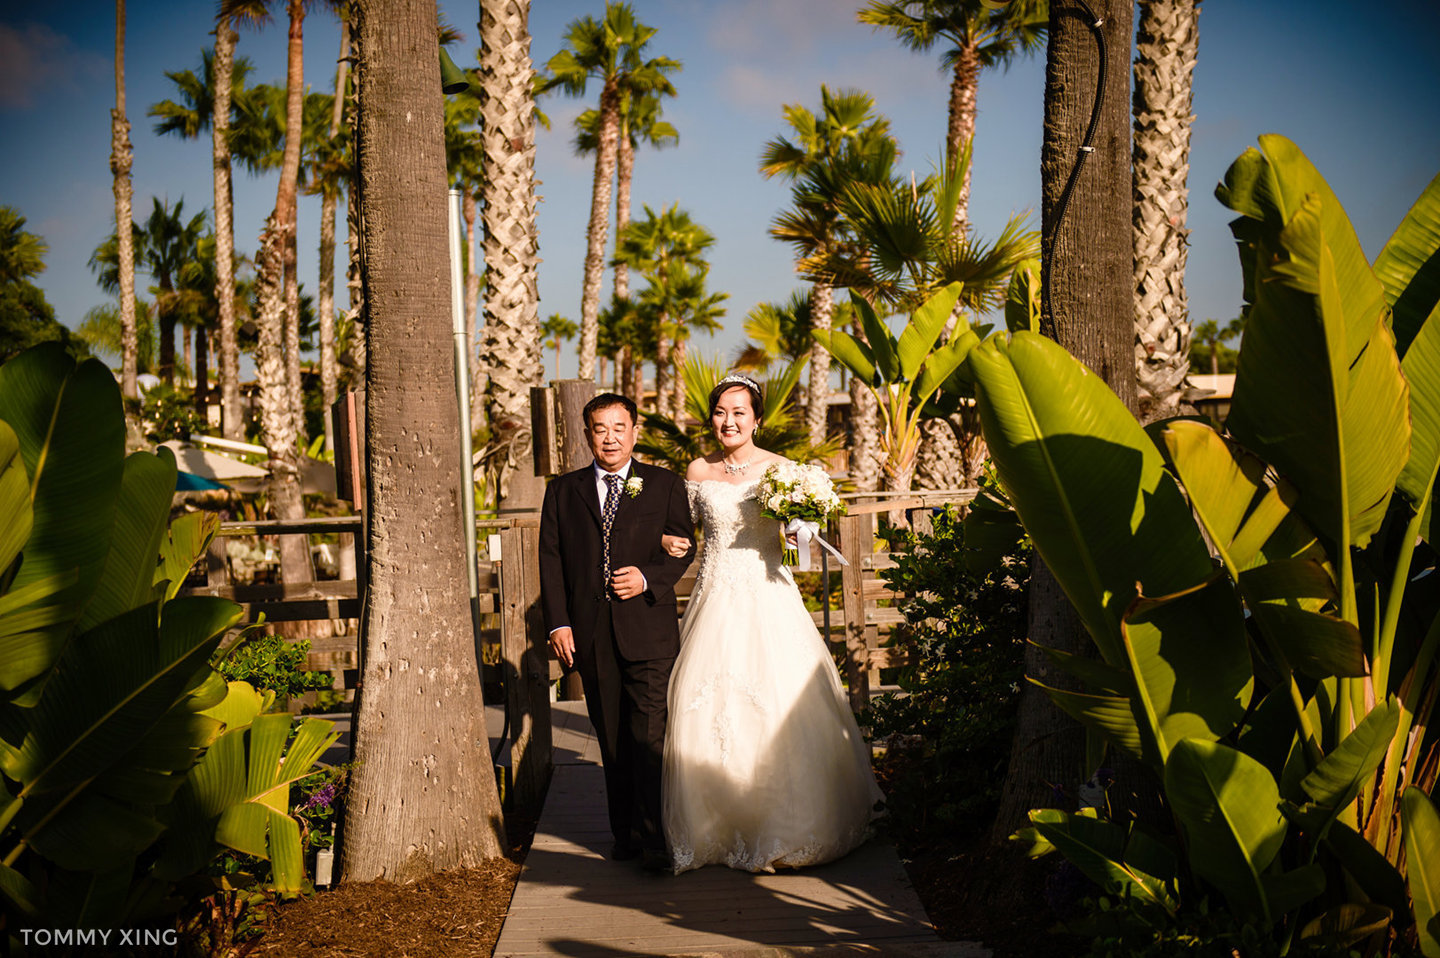 Paradise Point Resort Wedding Xiaolu & Bin San Diego 圣地亚哥婚礼摄影跟拍 Tommy Xing Photography 洛杉矶婚礼婚纱照摄影师 107.jpg